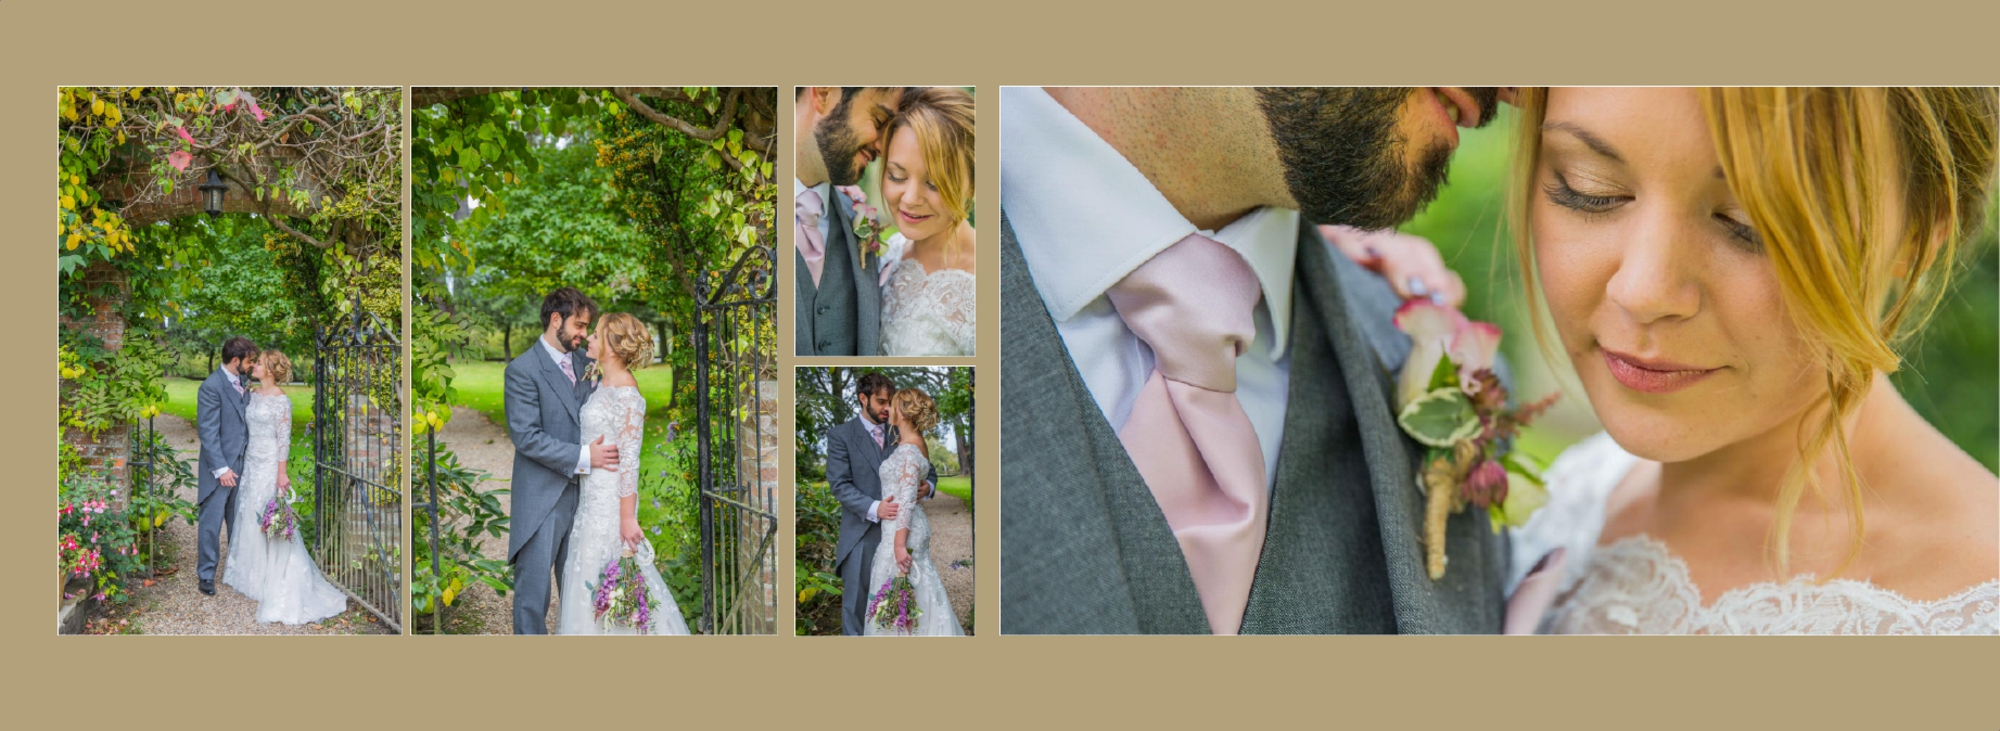 Careys Manor Kimberley Garrod Wedding Photographer